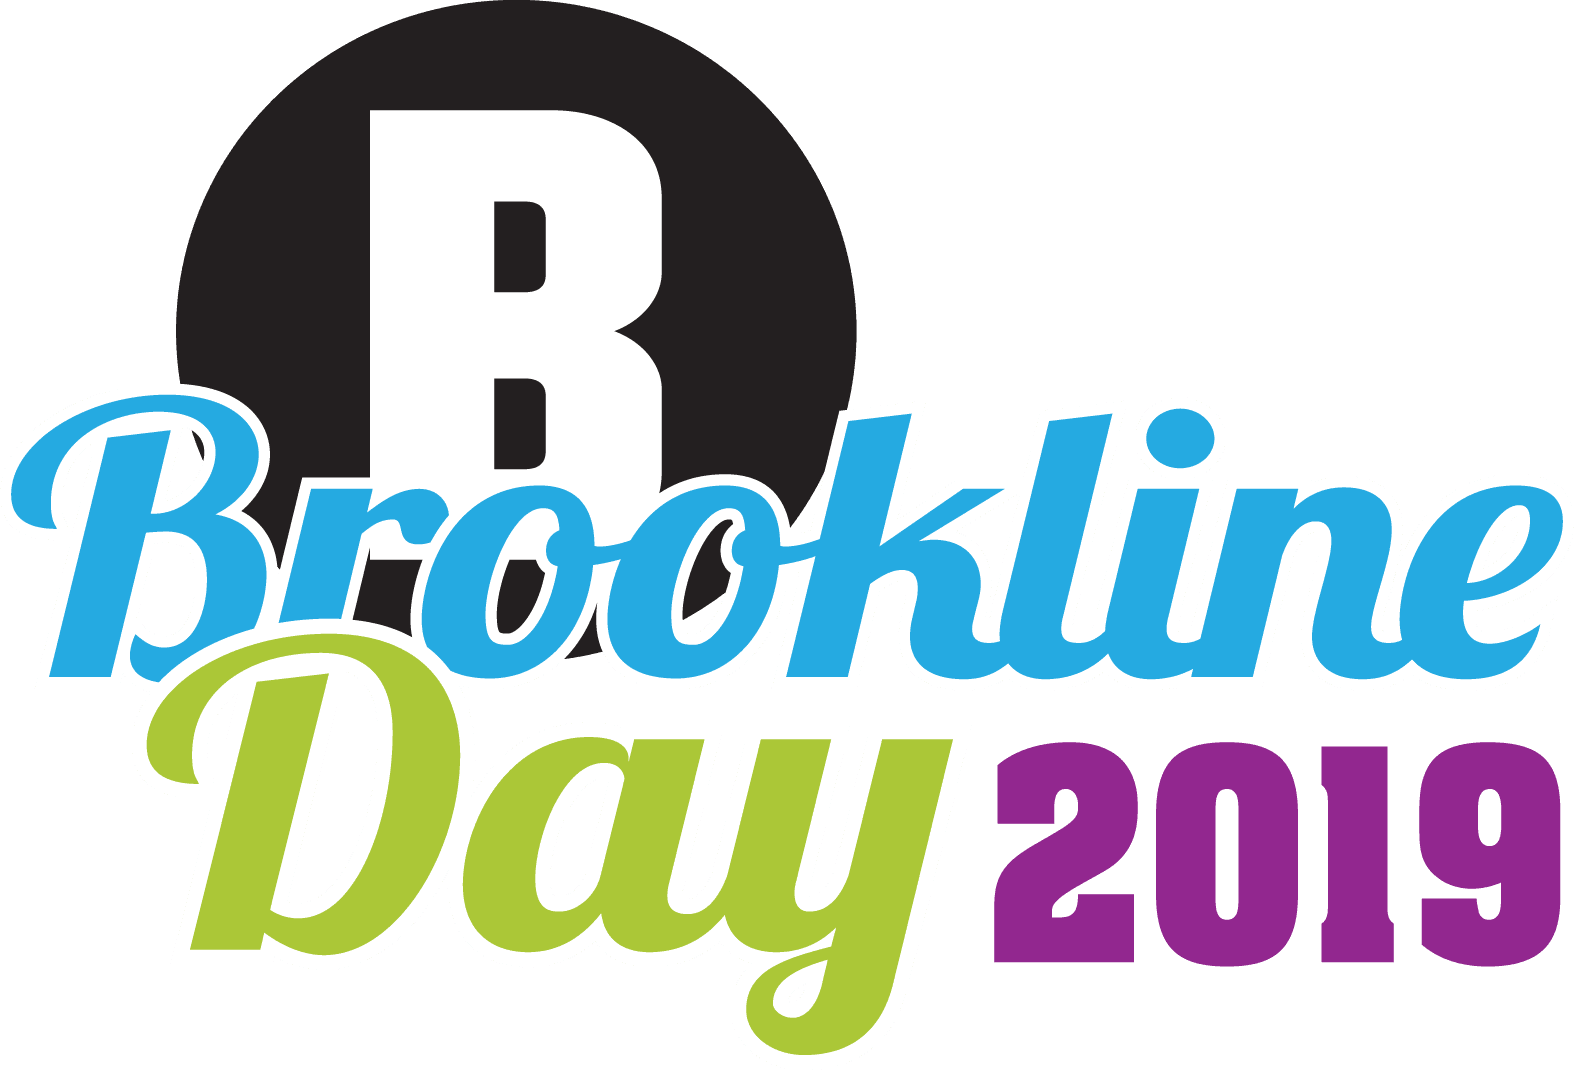 BrooklineDay2019logo